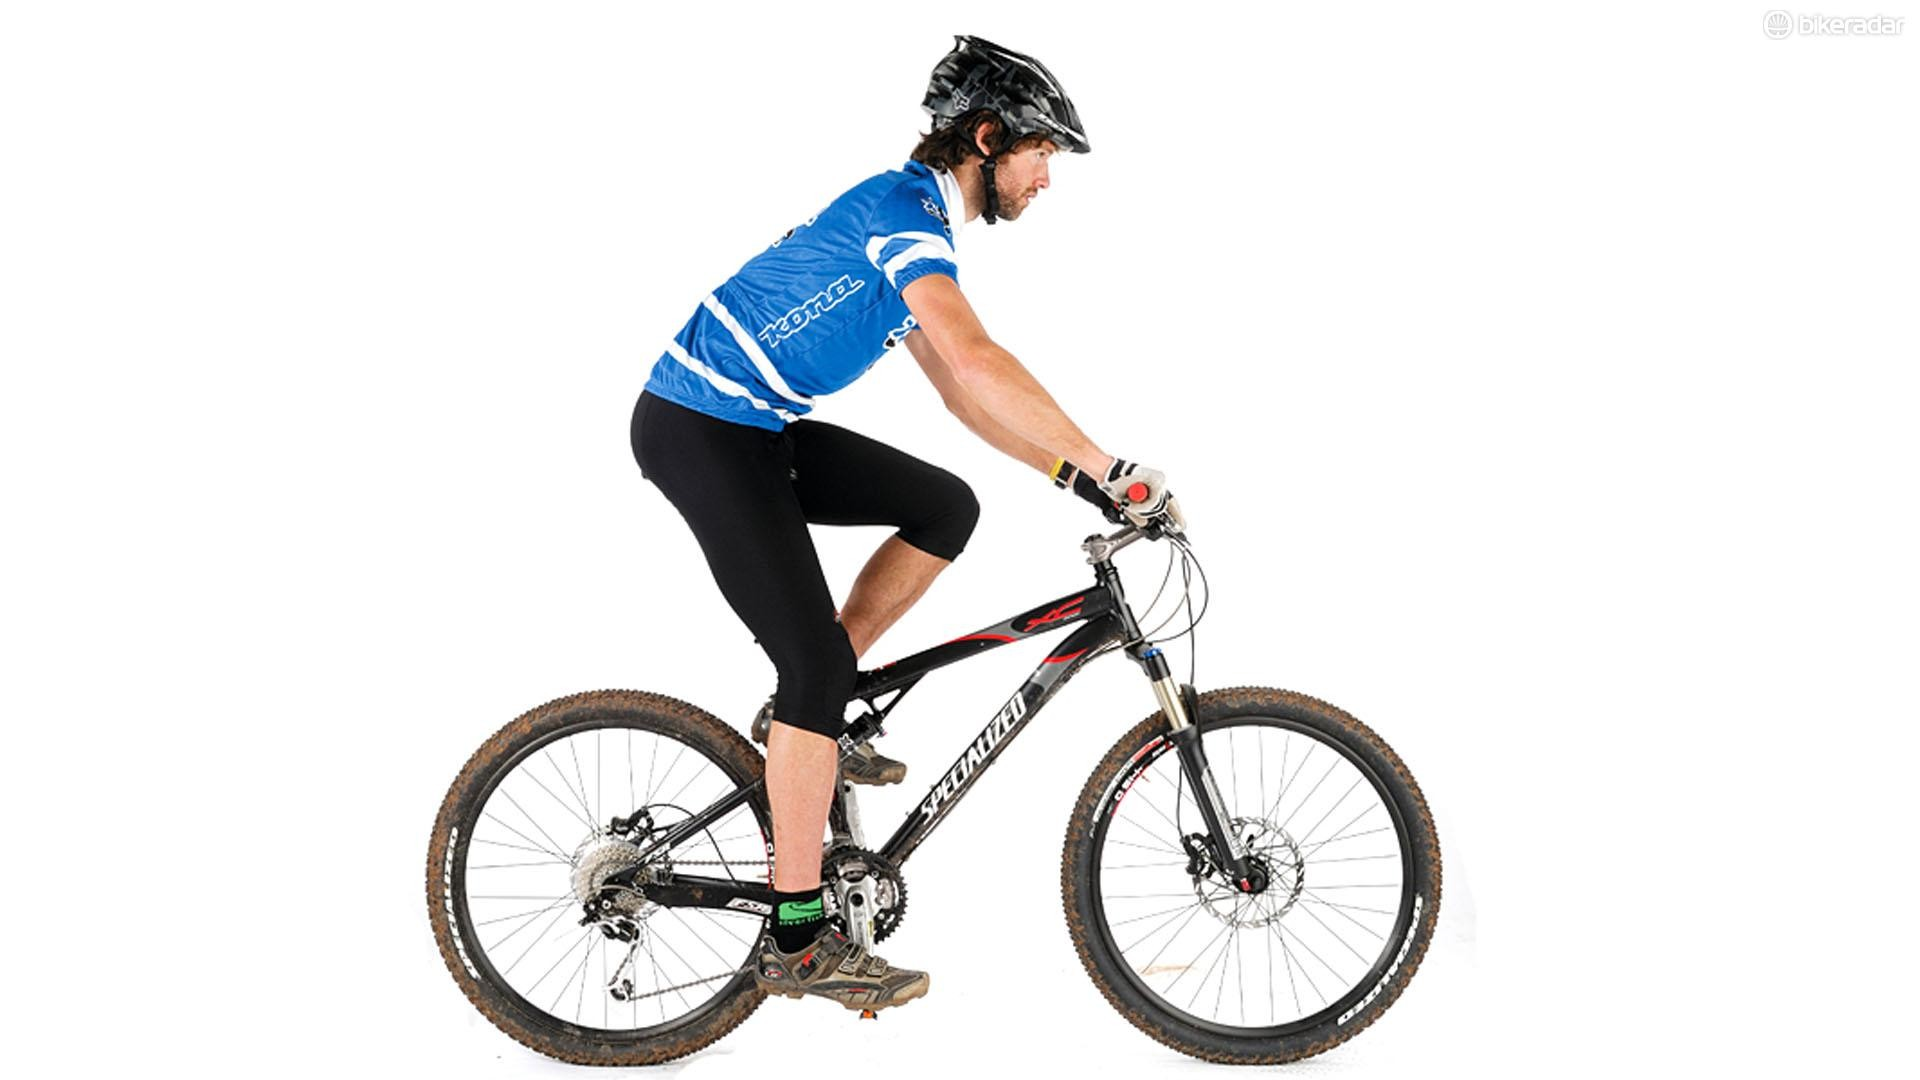 Comfort and performance are all tied into the fit of the mountain bike